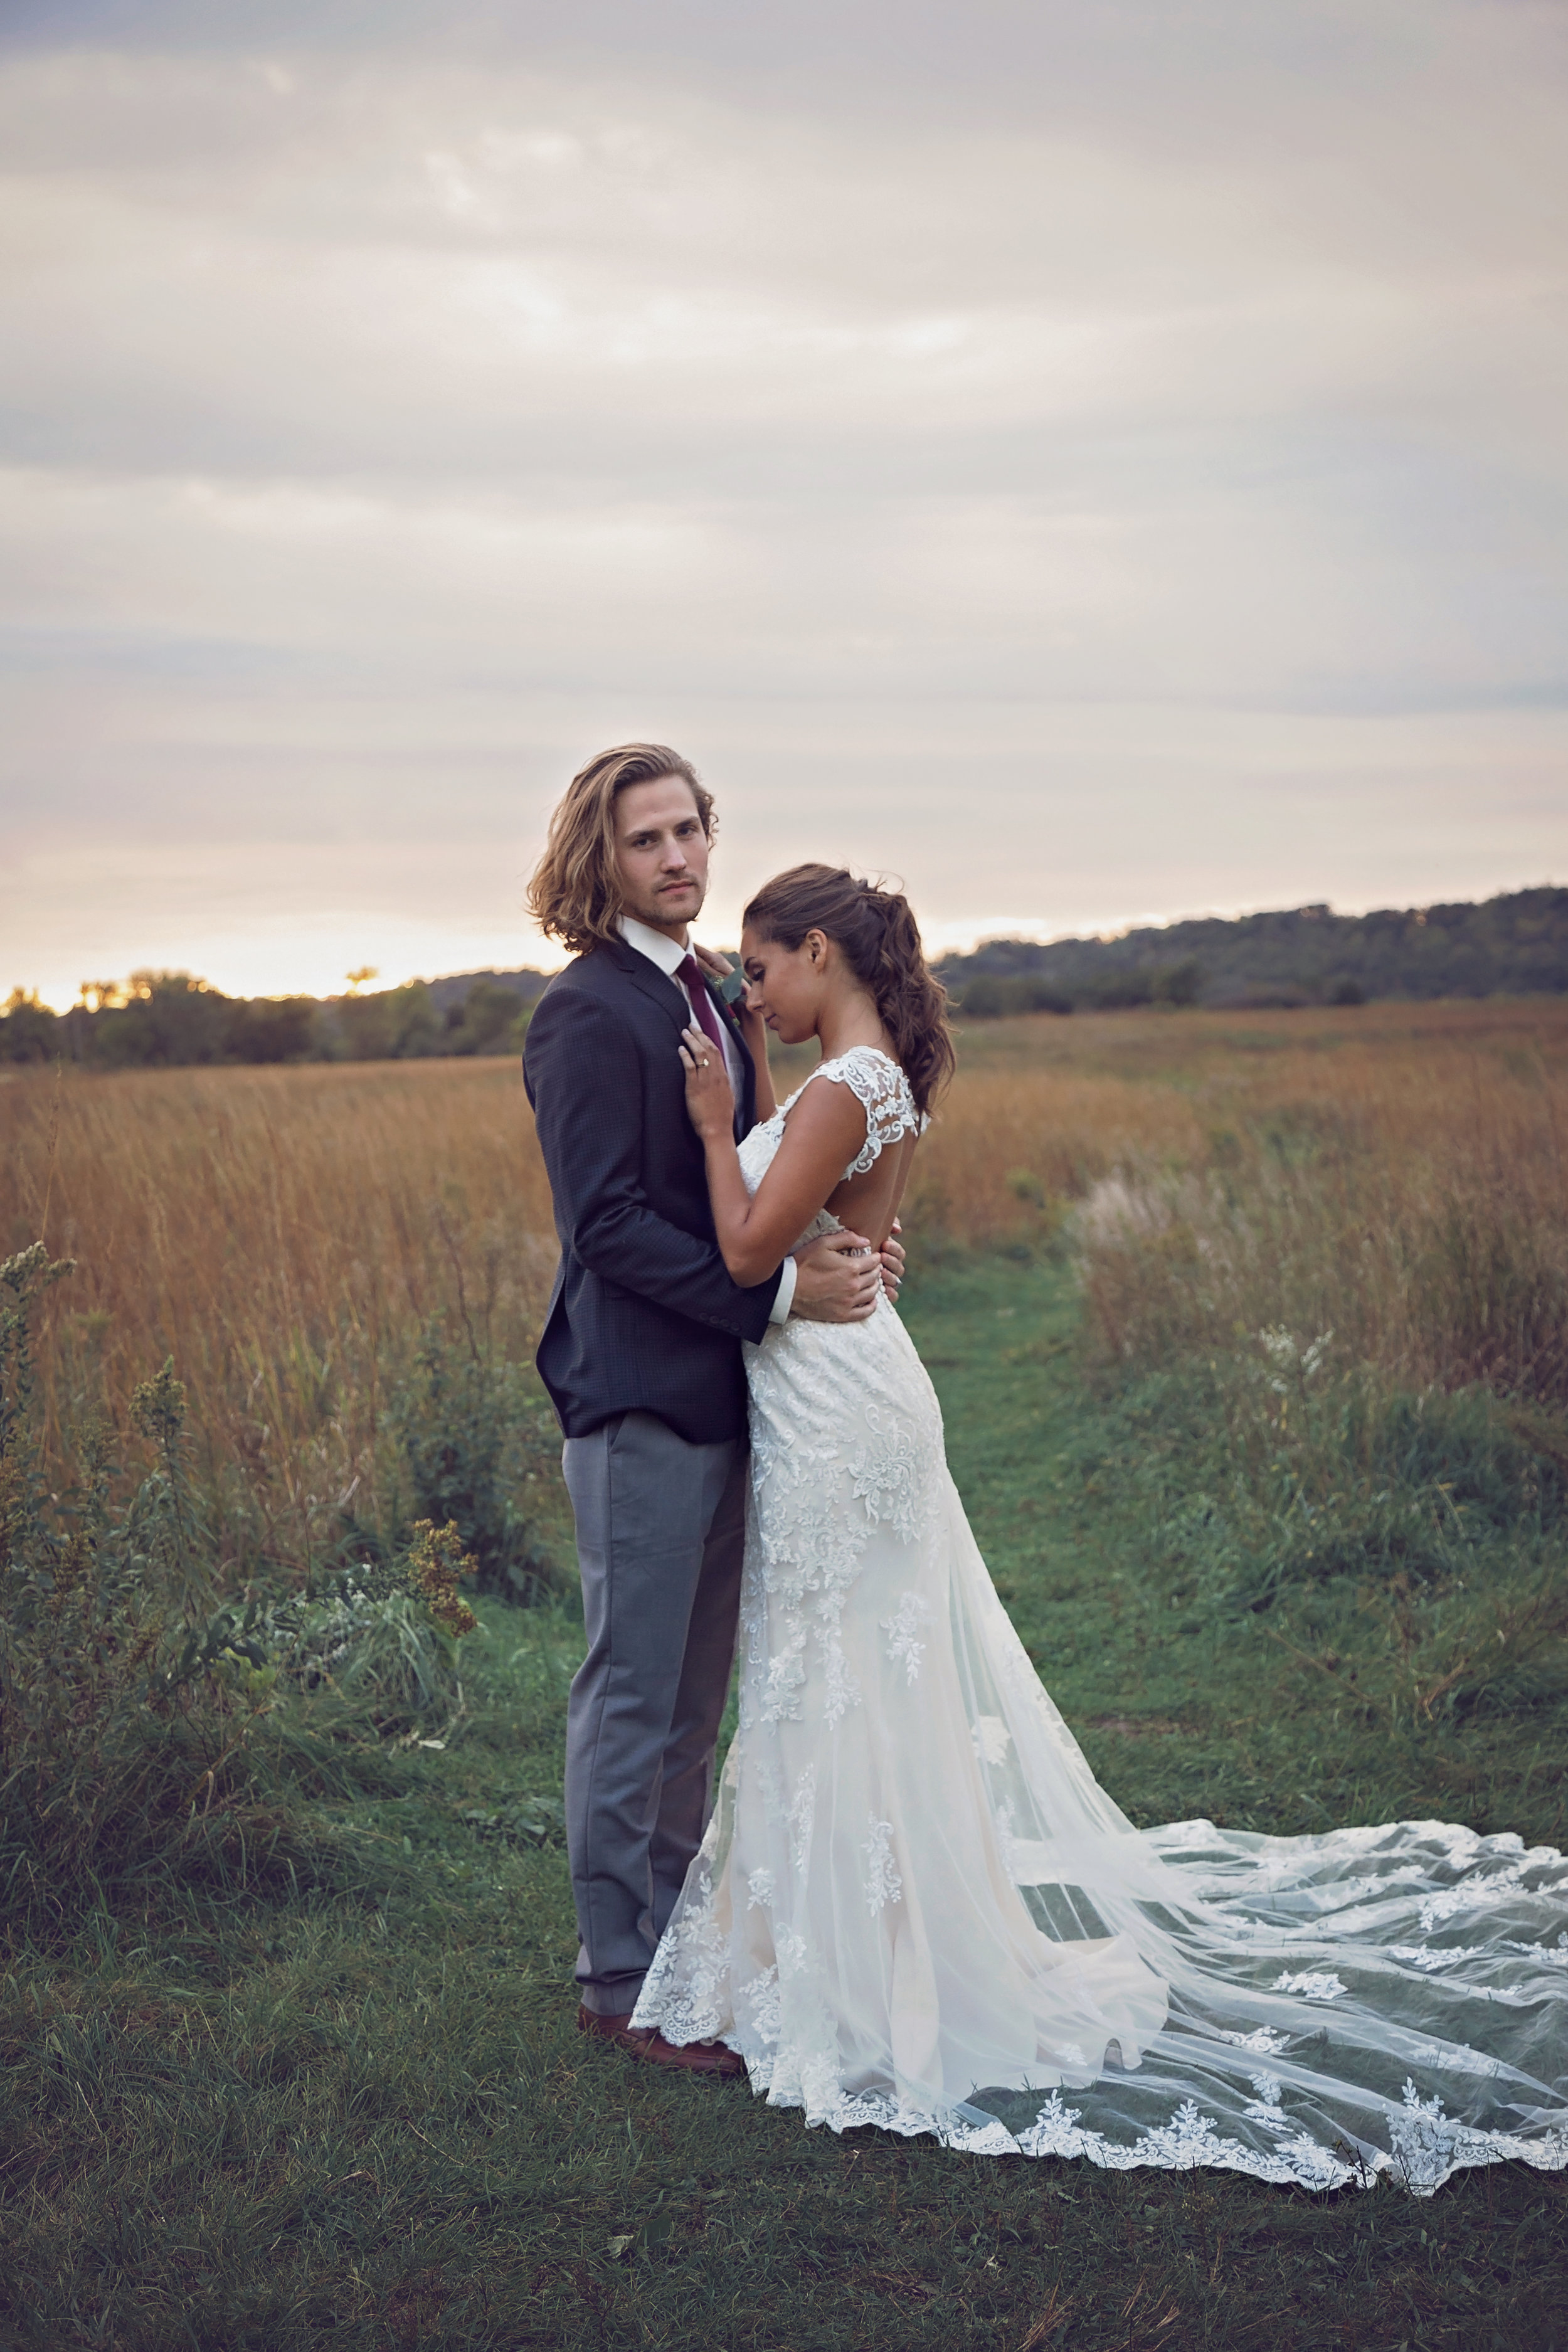 MINNESOTA WEDDING PHOTOGRAPHER   J. longs     INSPIRE BRIDAL BOUTIQUE   INTUITION WEDDINGS BY ID PHOTOGRAPHY